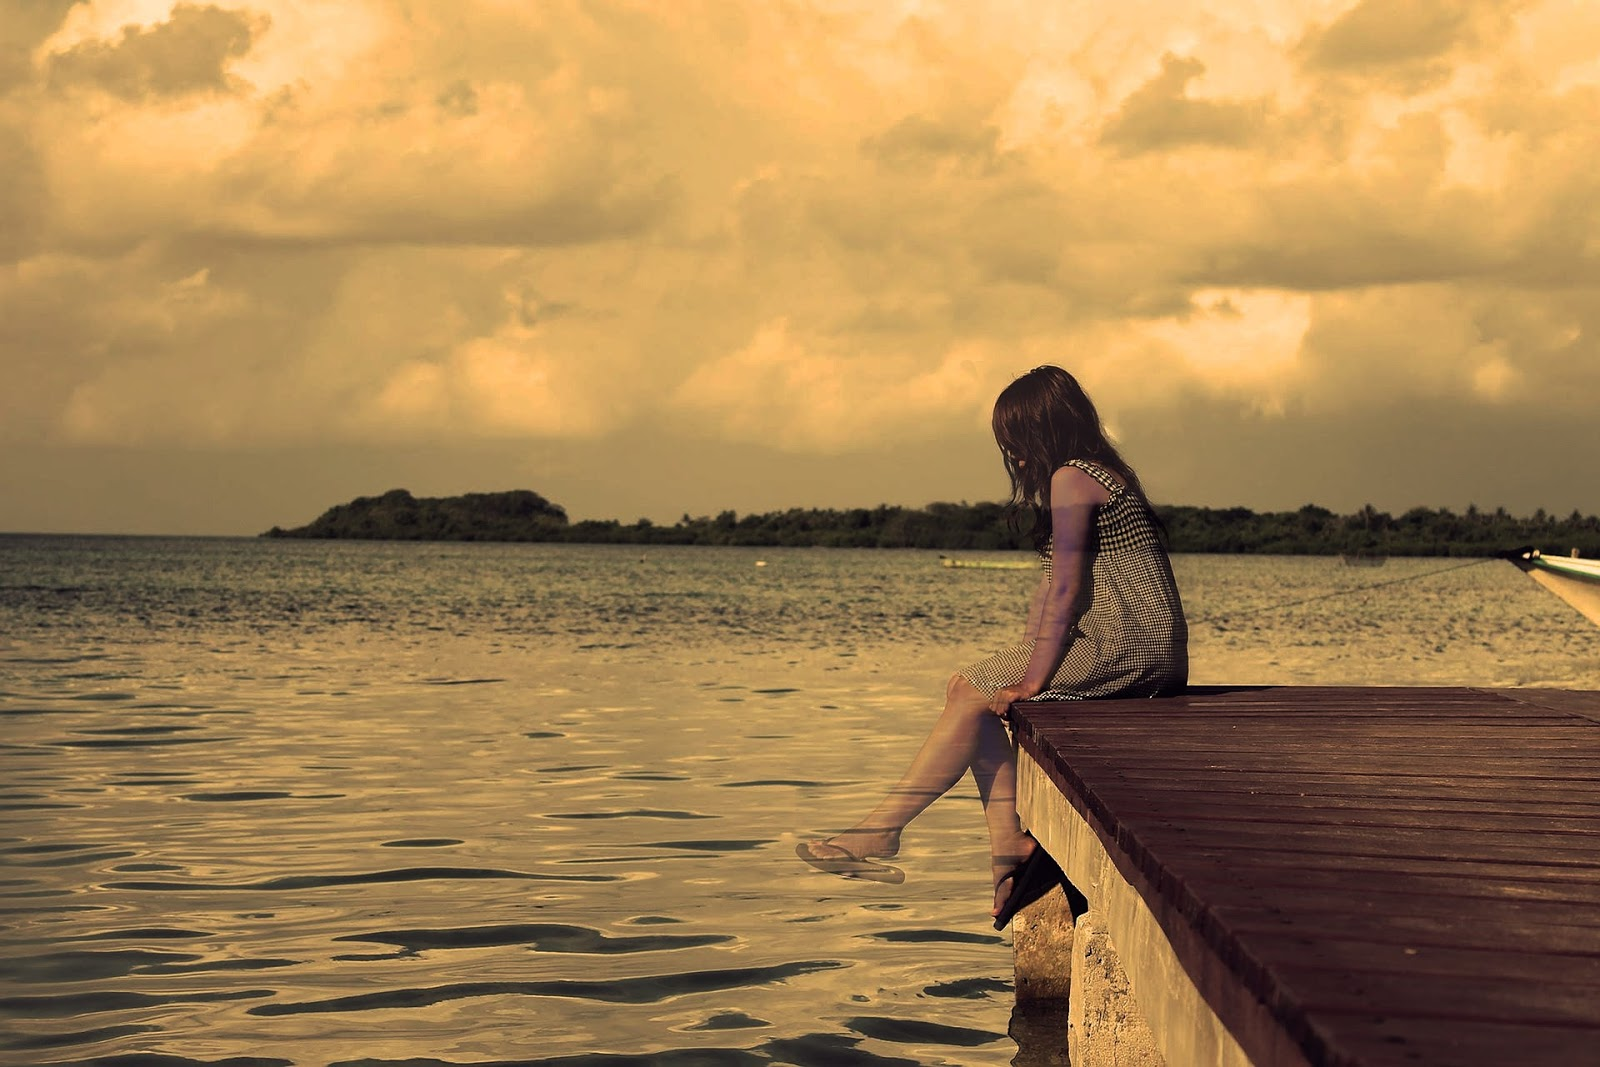 Lonely girl images the new beautiful lonely girl images with hd wallpaper background download lonely girl and very sad girls photo free download